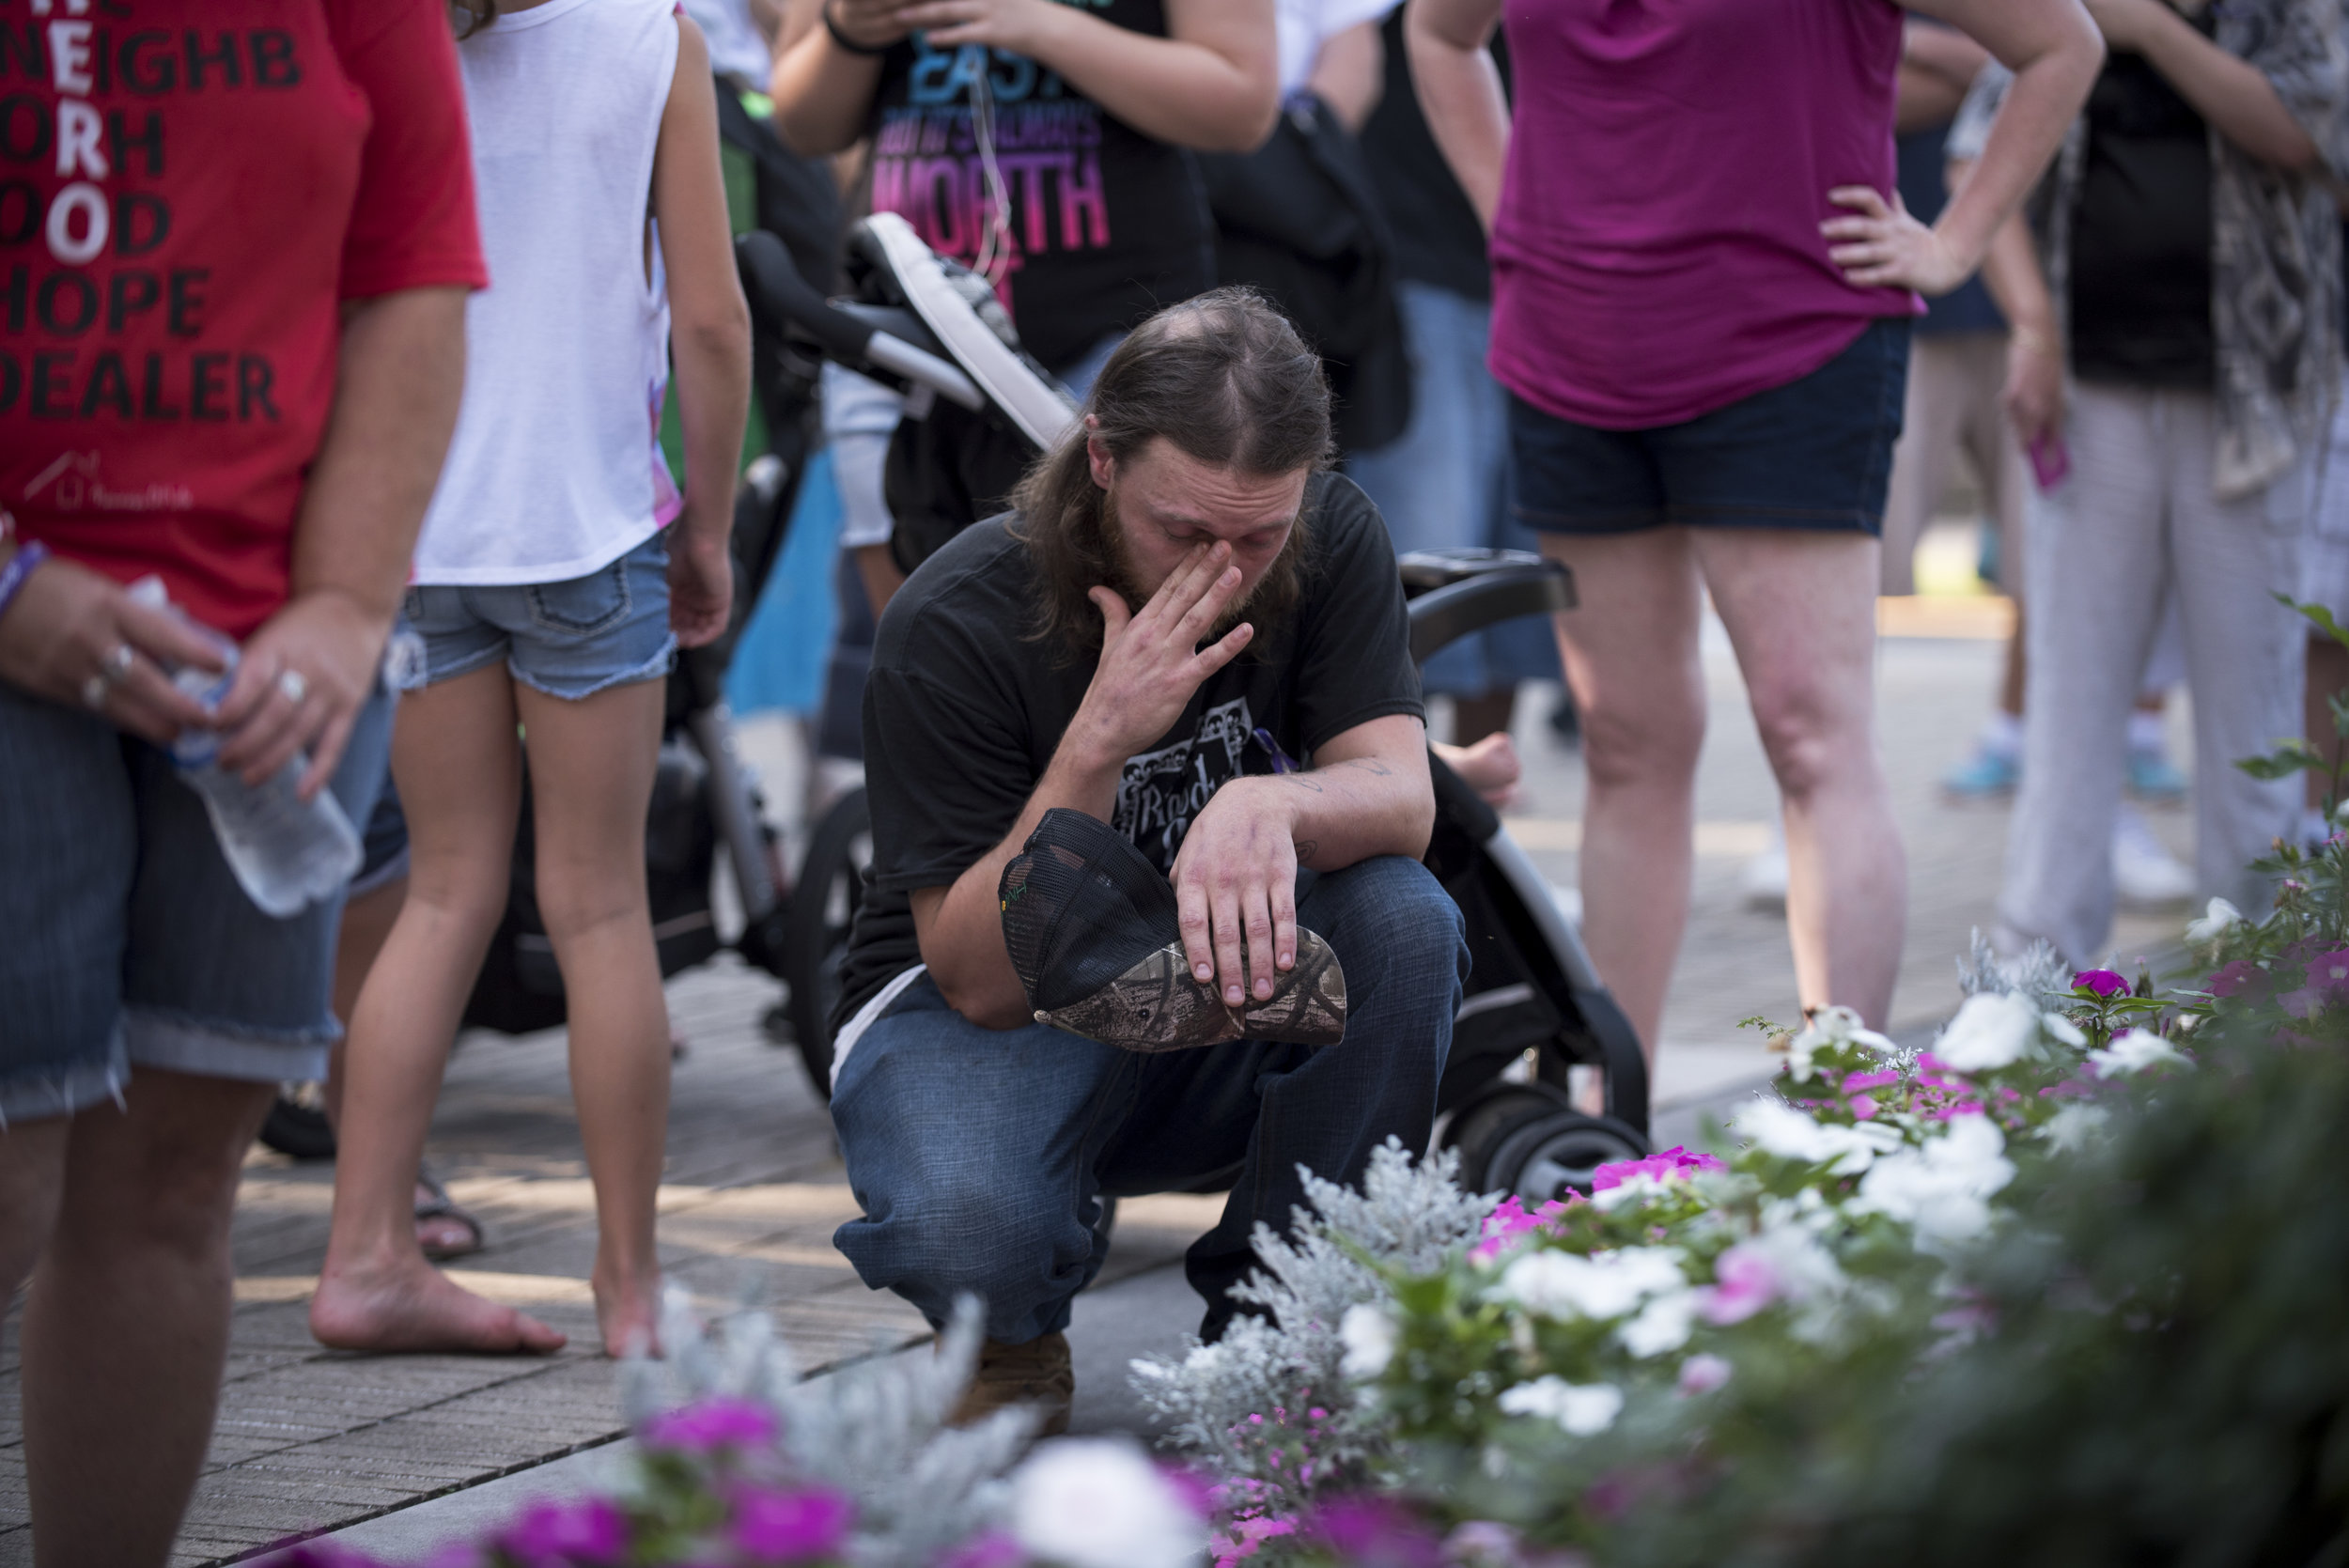 Ryan Fieldman, 33, kneels during the opening prayer at the West Virginia Overdose Awareness Day Tribute at the State Capitol in Charleston, WV on August 27, 2016. Ryan is currently in recovery at Jacob's Ladder in Aurora, WV.